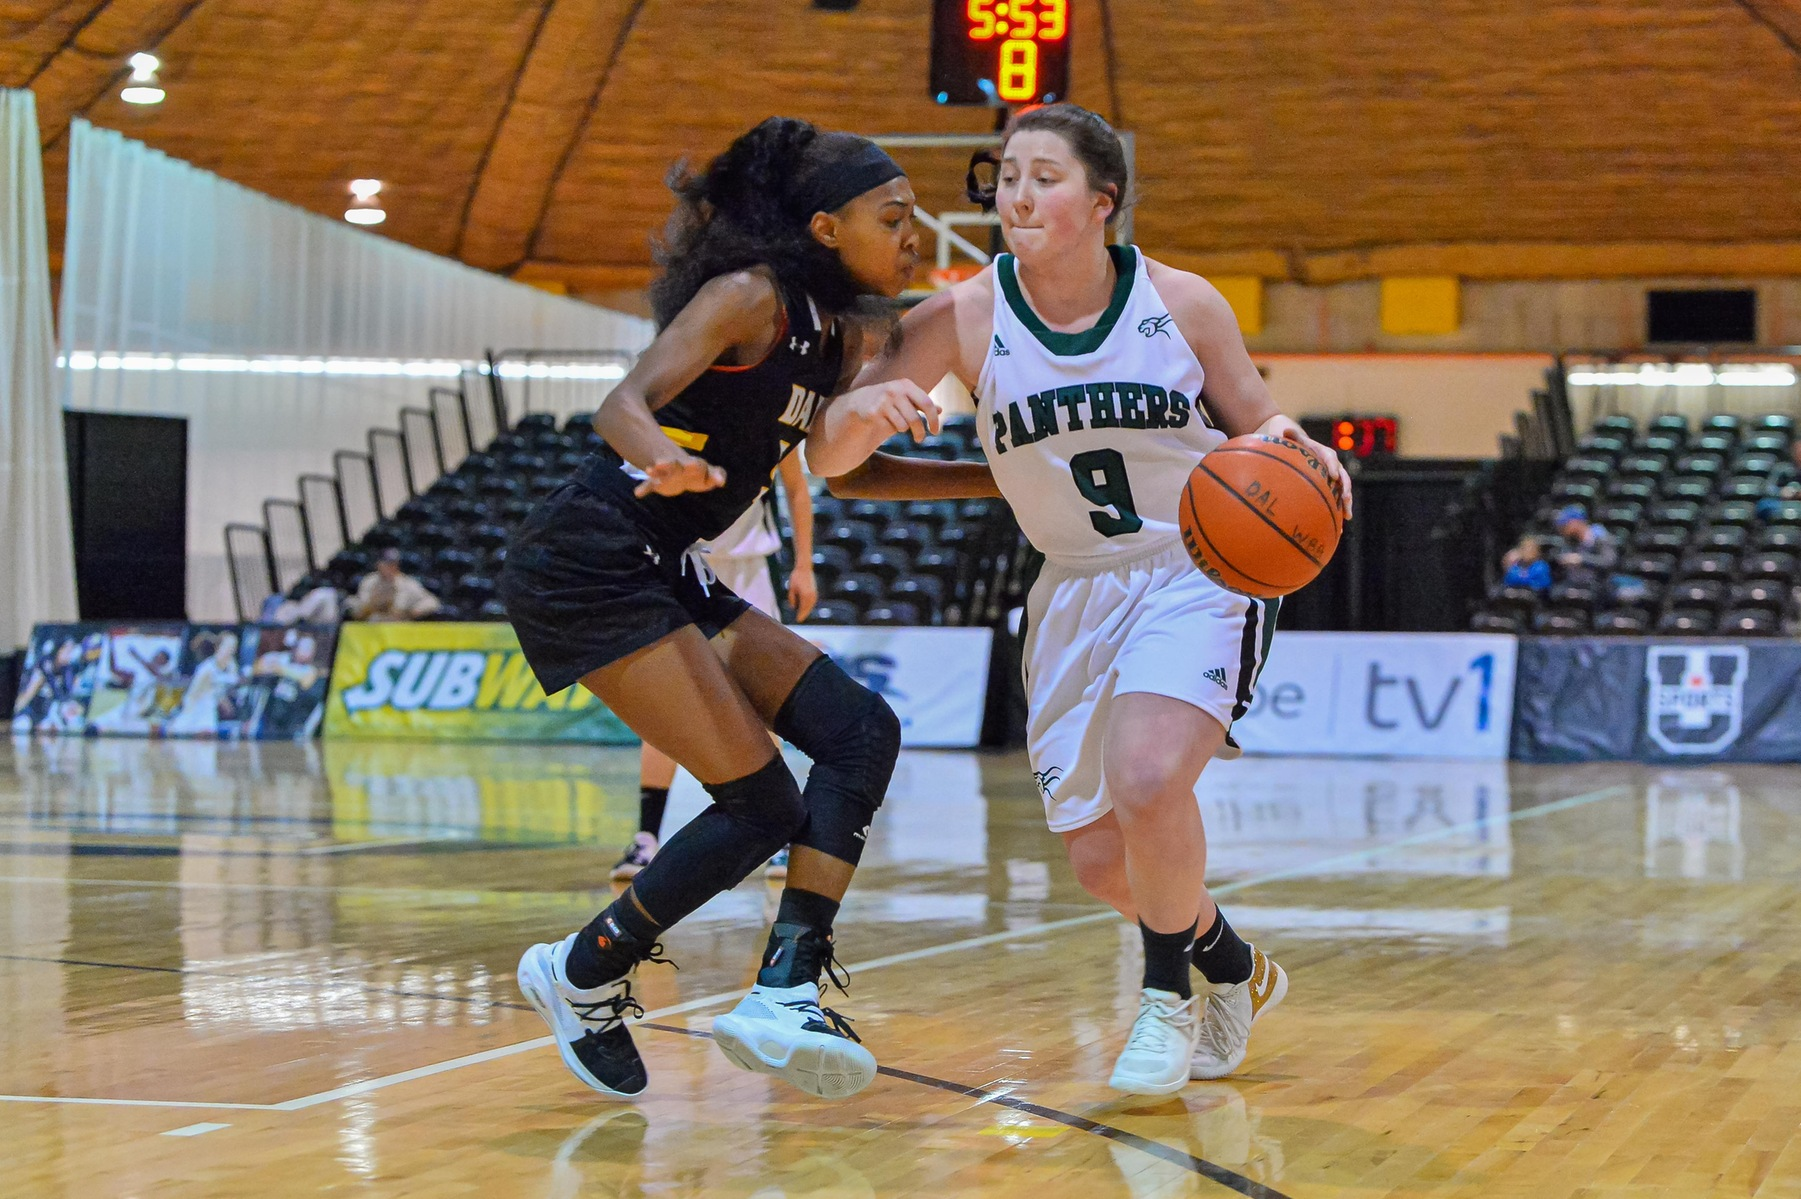 Panthers earn season sweep of Dalhousie in 72-62 win